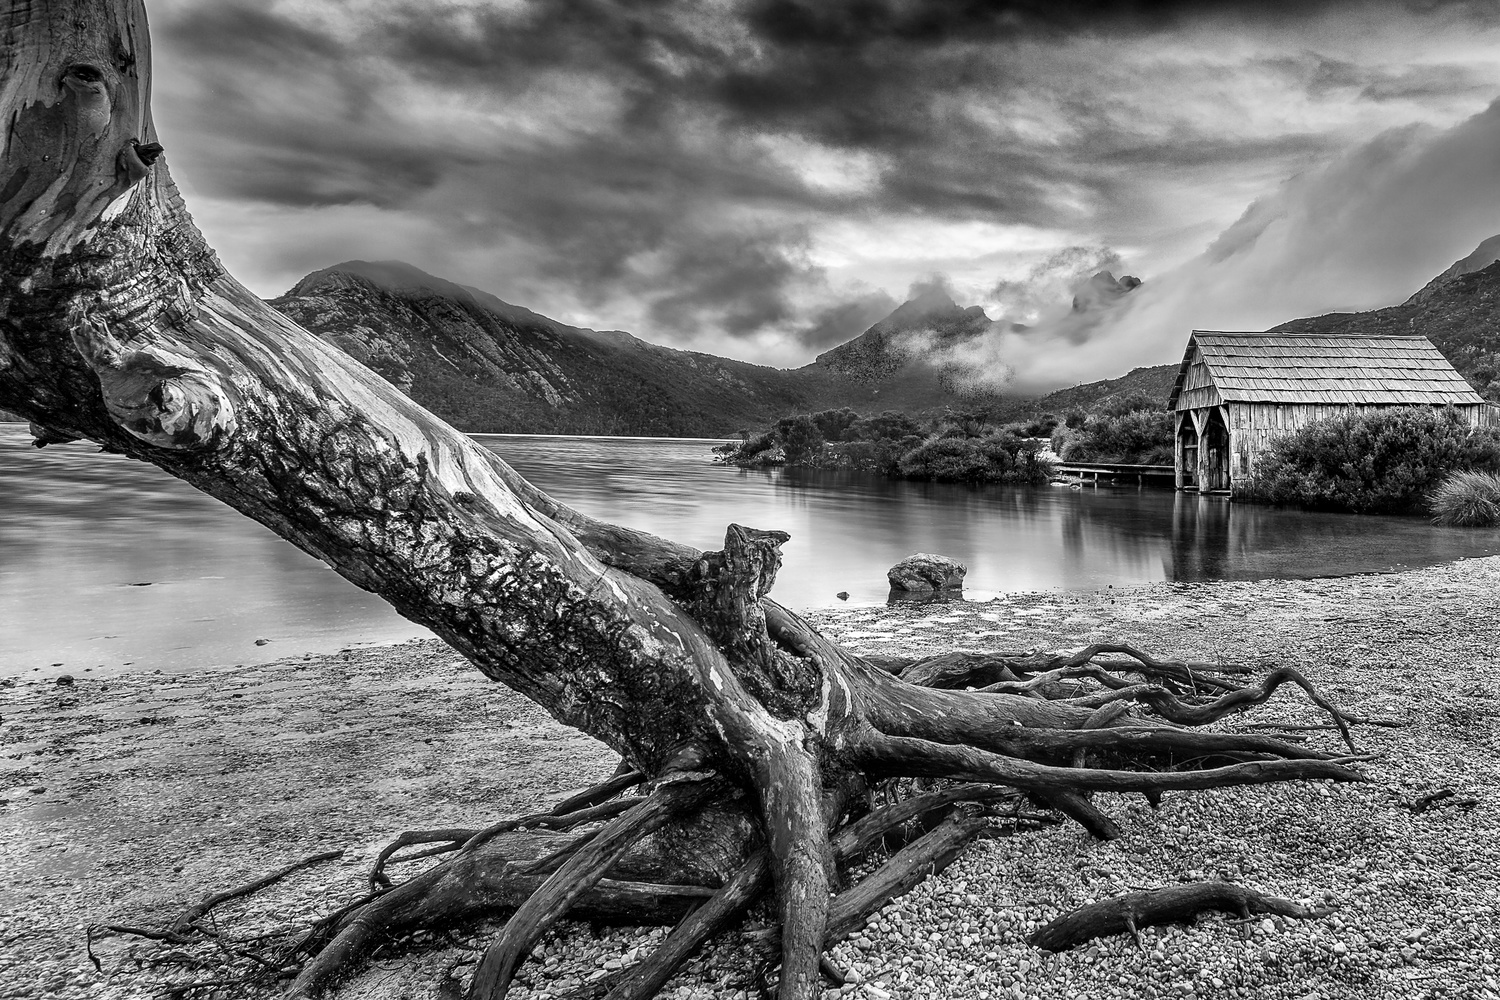 lake, mountain, black and white, long exposure, slow shutter, nisi filter